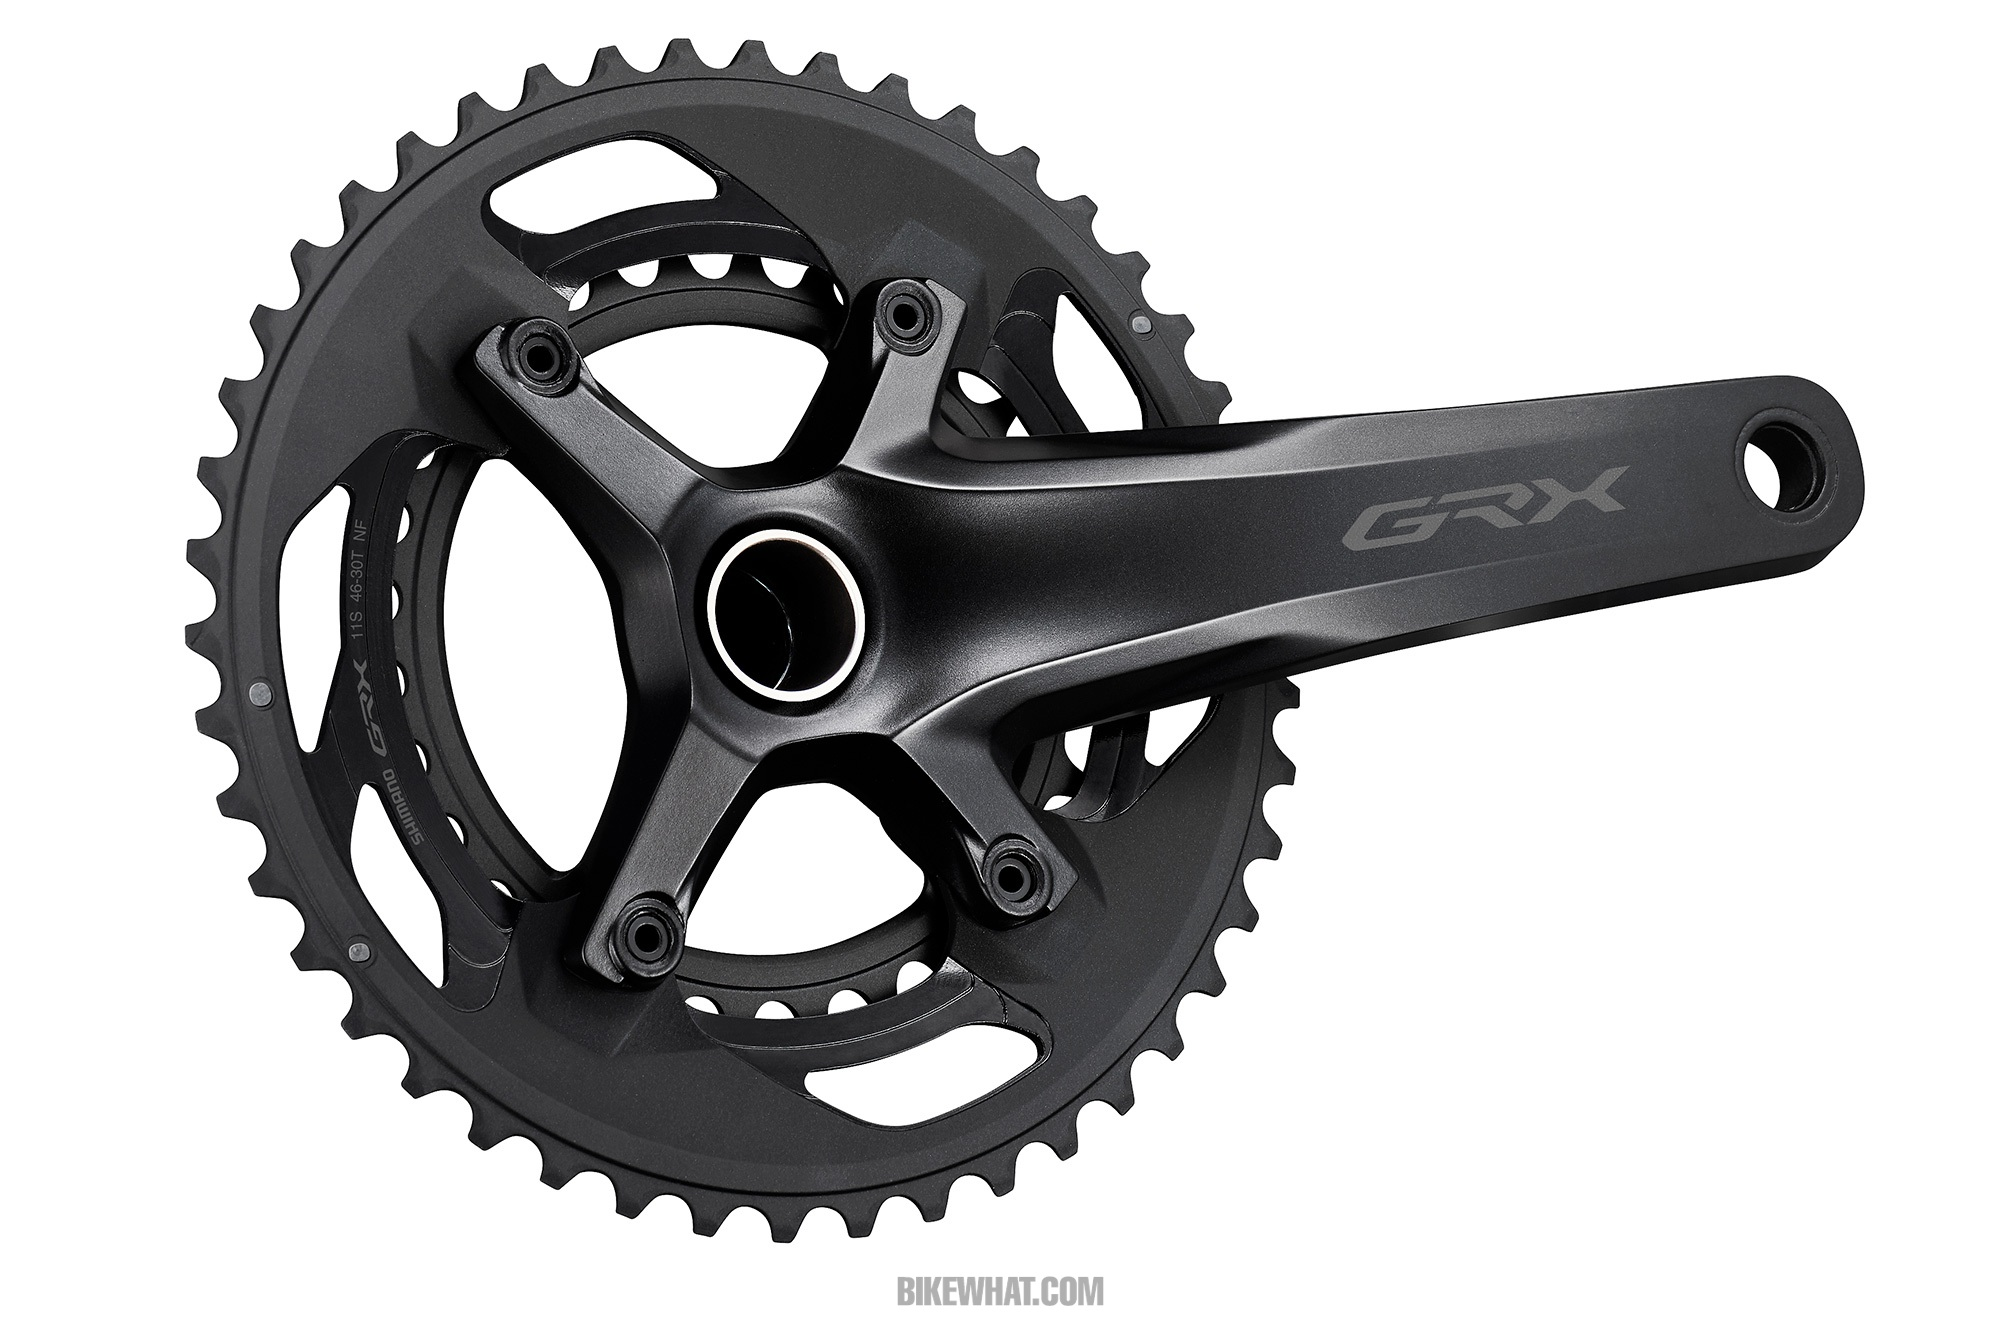 Preview_Shimano_GRX_FC-RX600-11_46-30T.jpg